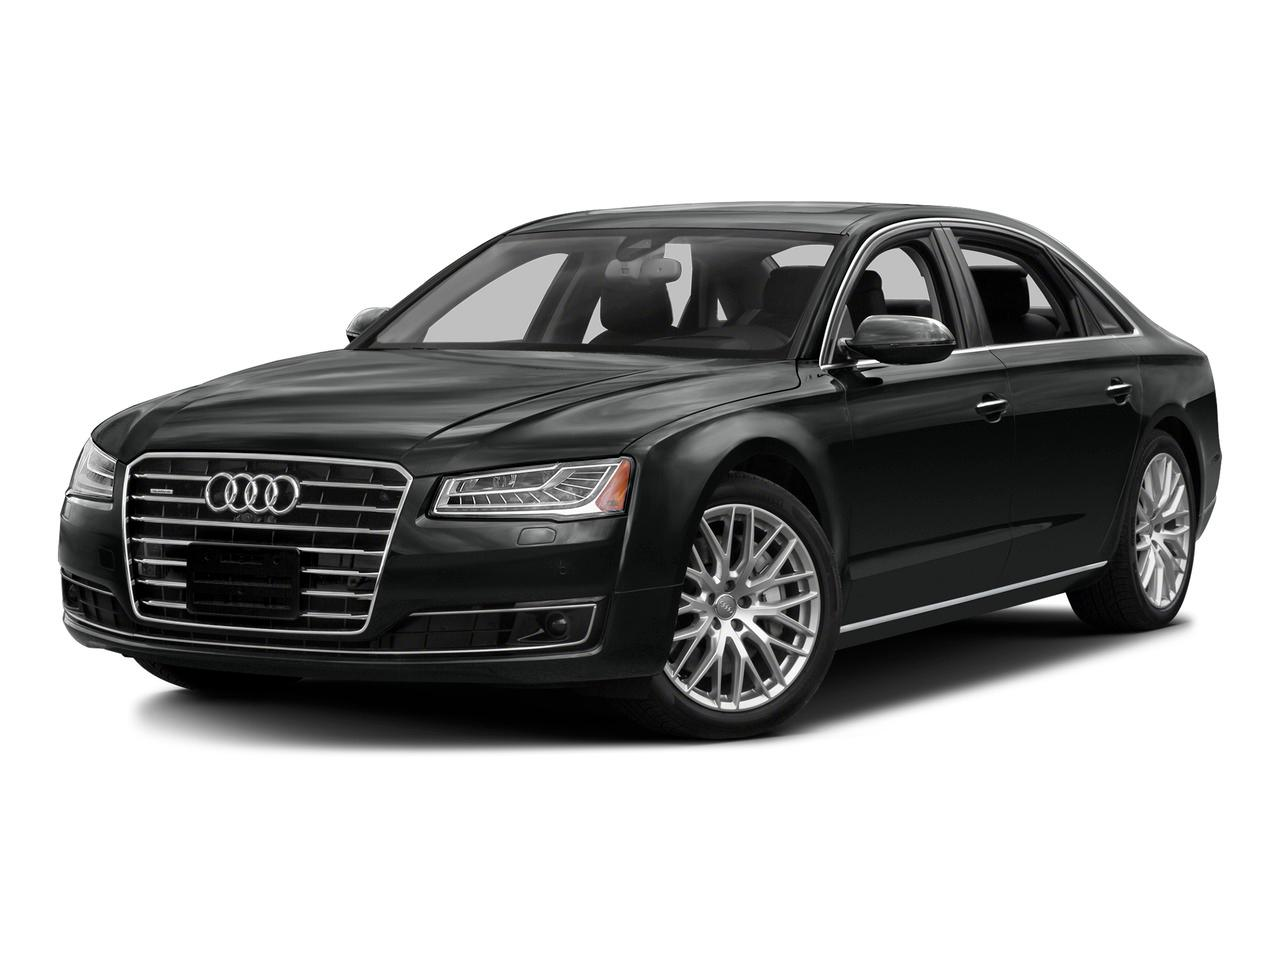 2015 Audi A8 L Vehicle Photo in West Chester, PA 19382